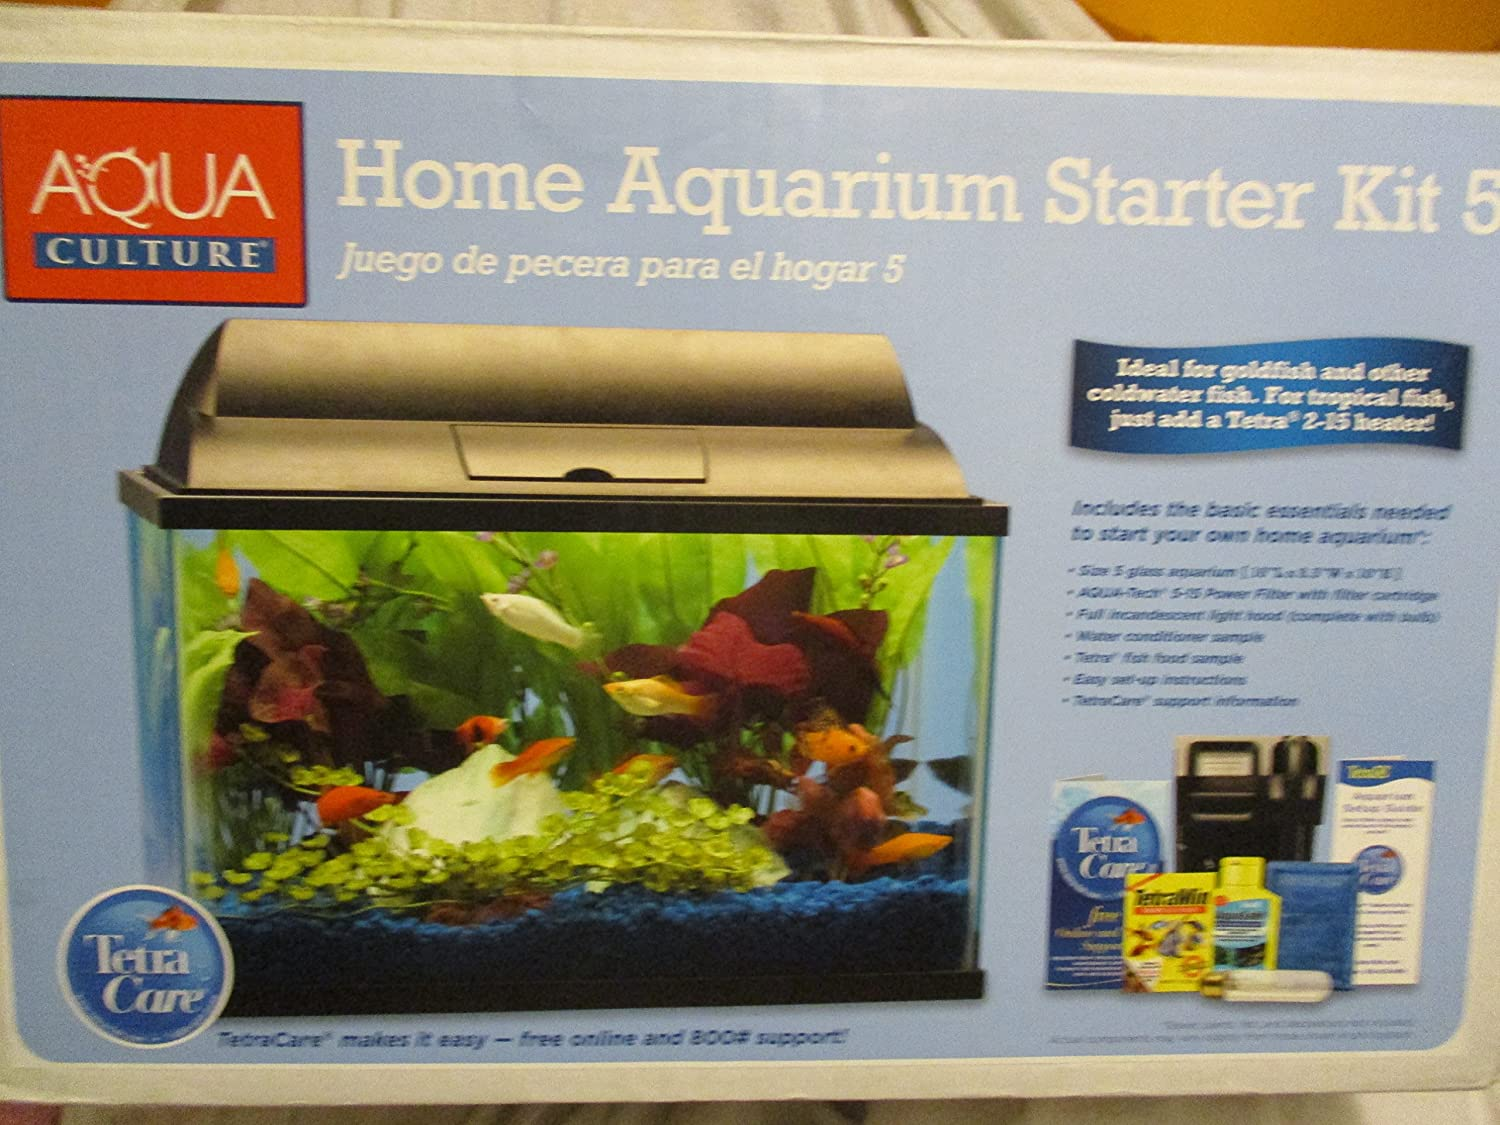 Amazon.com : Aqua Culture Home Aquarium Starter Kit 5 : Pet Supplies